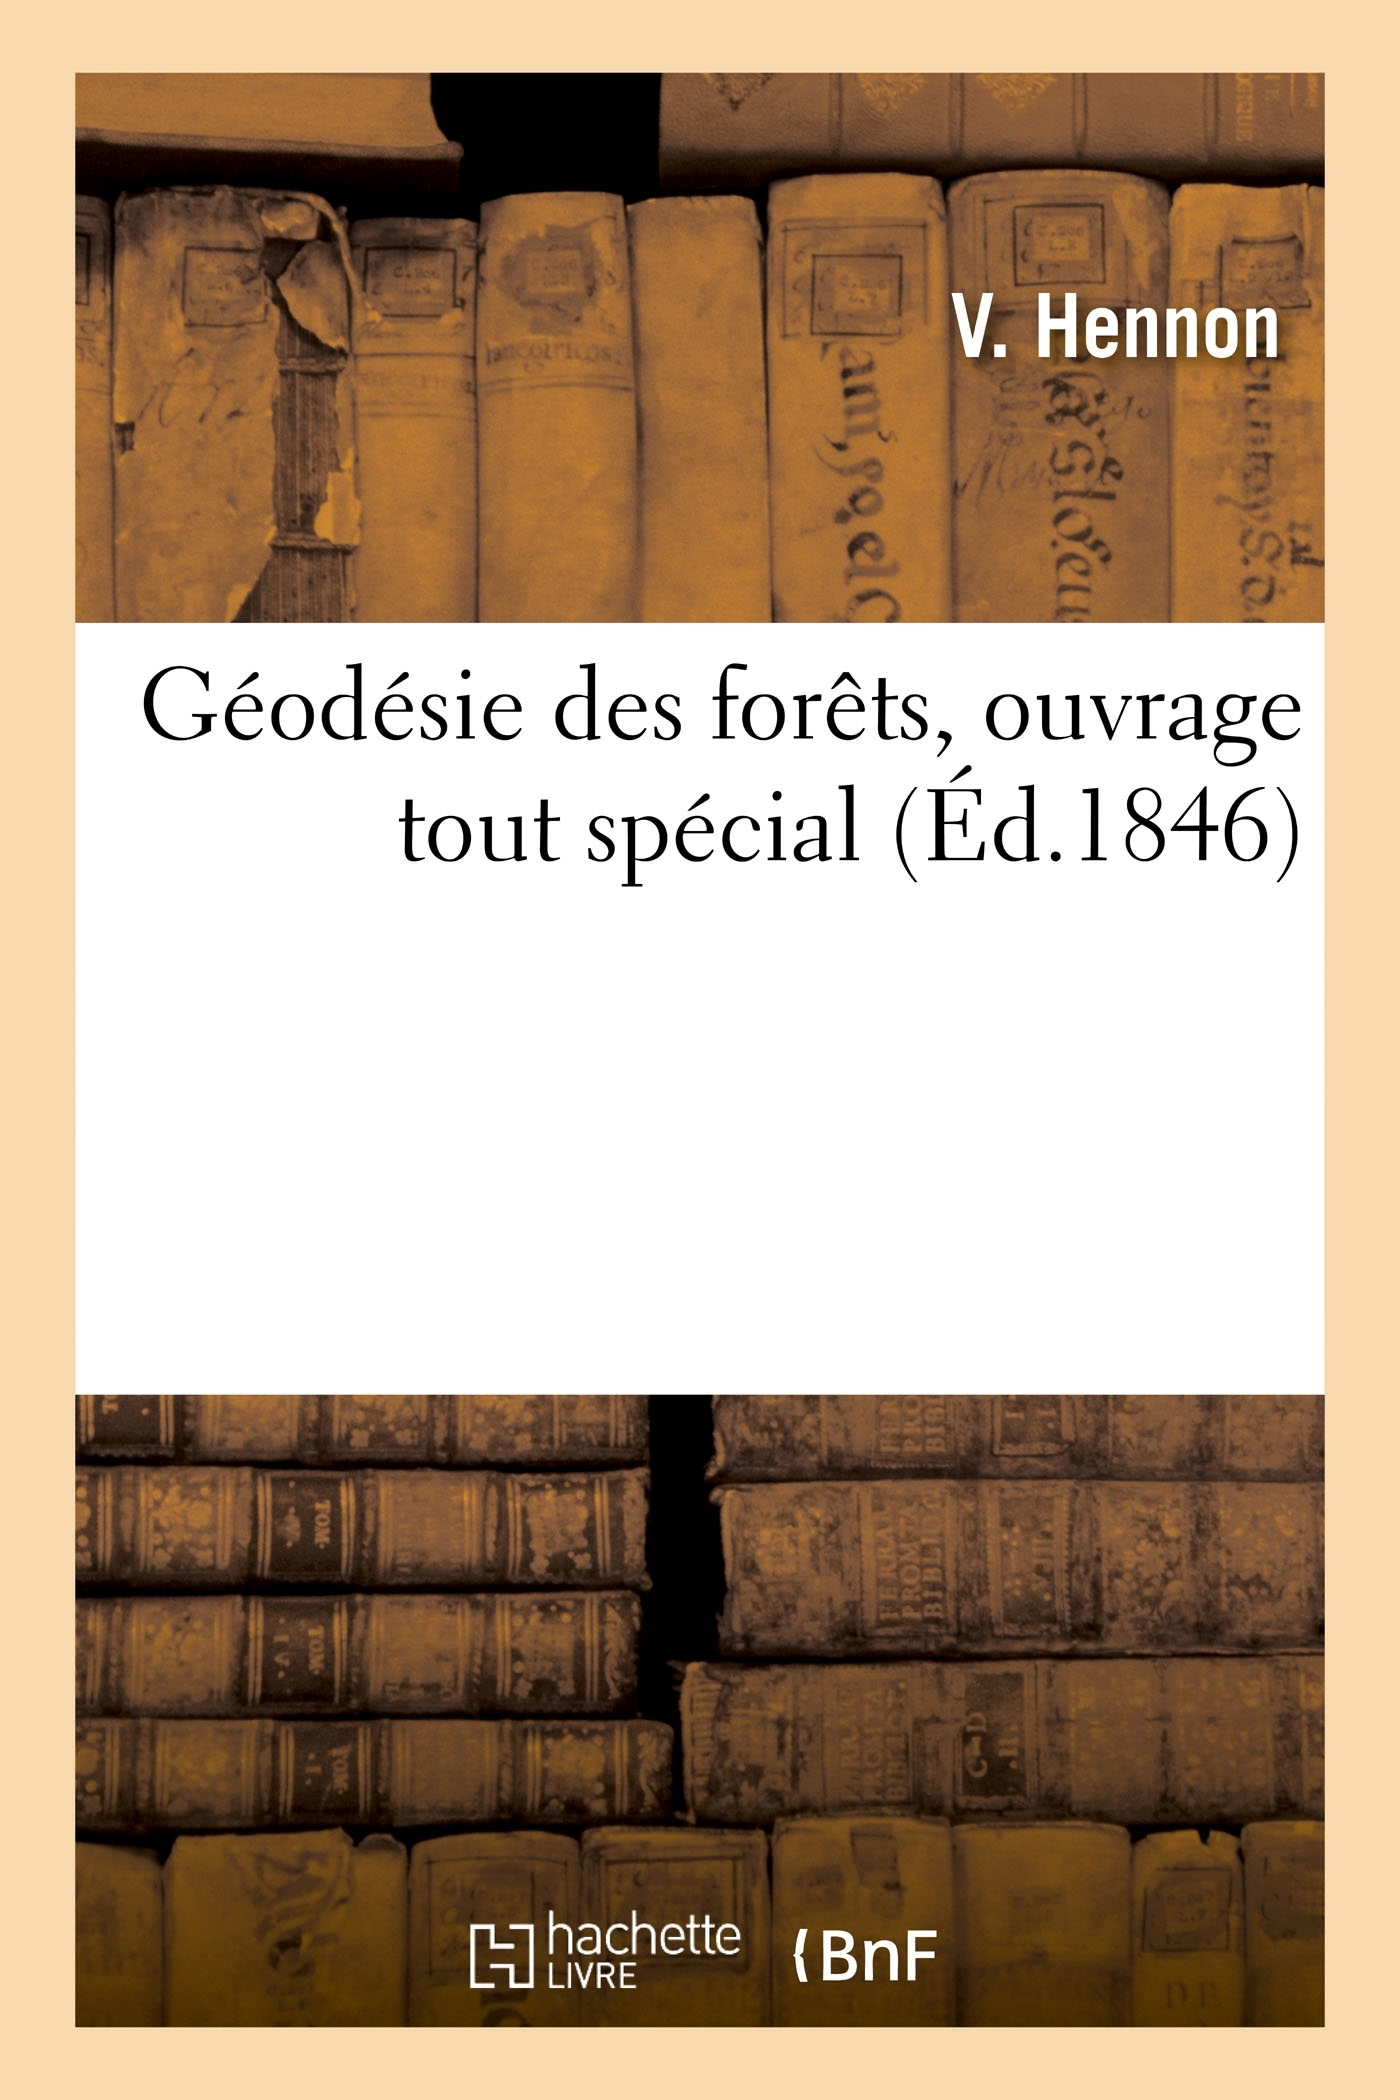 GEODESIE DES FORETS : OUVRAGE TOUT SPECIAL